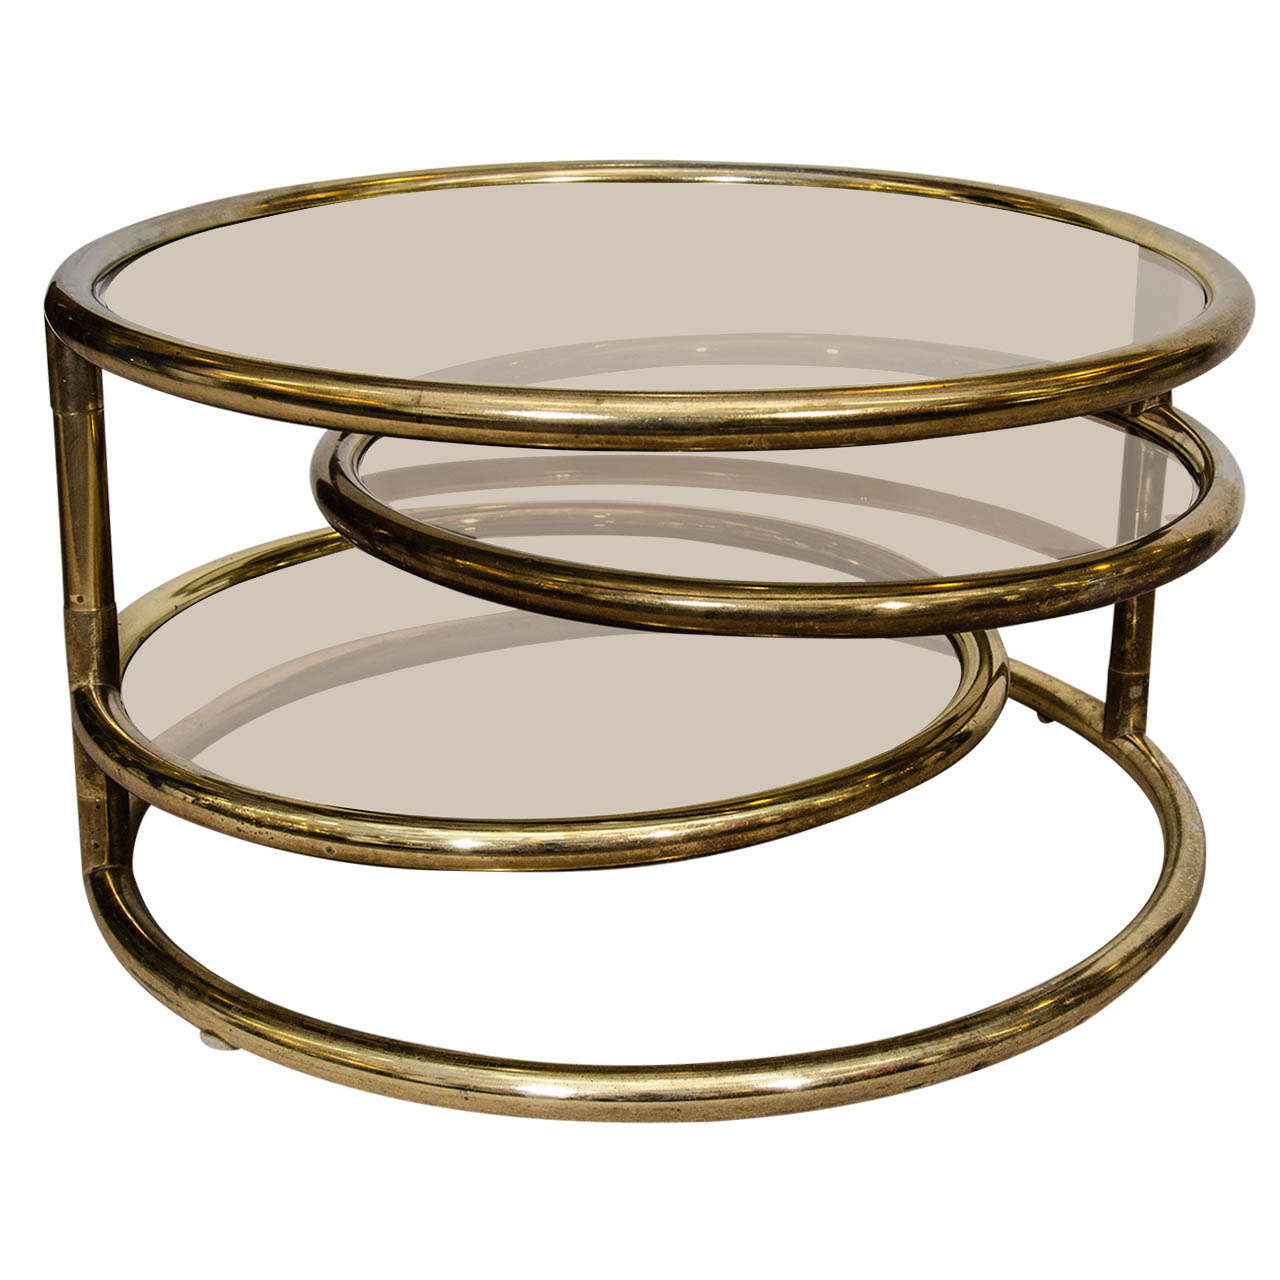 Attirant Mid Century Milo Baughman Style Brass Swivel Coffee Table For Sale